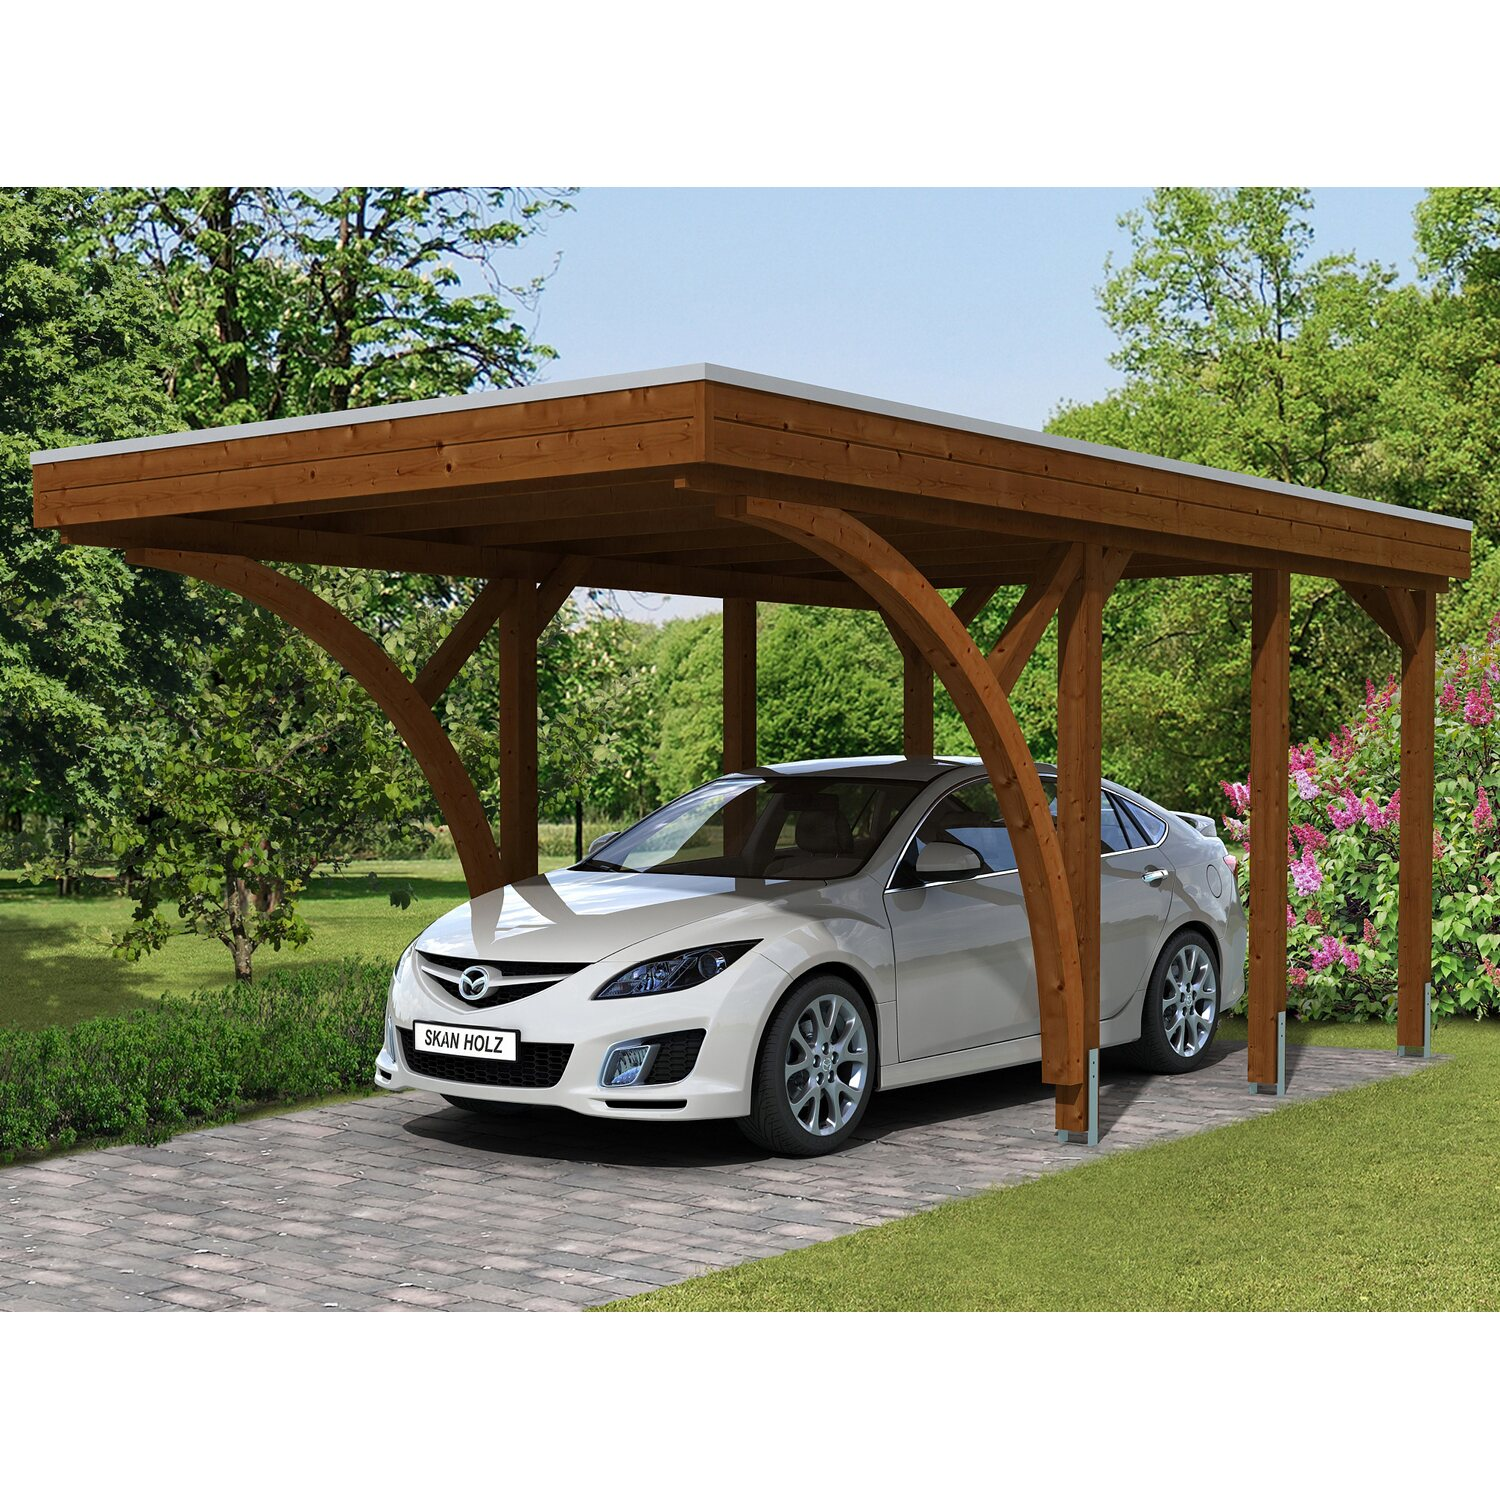 skan holz carport friesland set 6 314 cm x 555 cm nussbaum kaufen bei obi. Black Bedroom Furniture Sets. Home Design Ideas